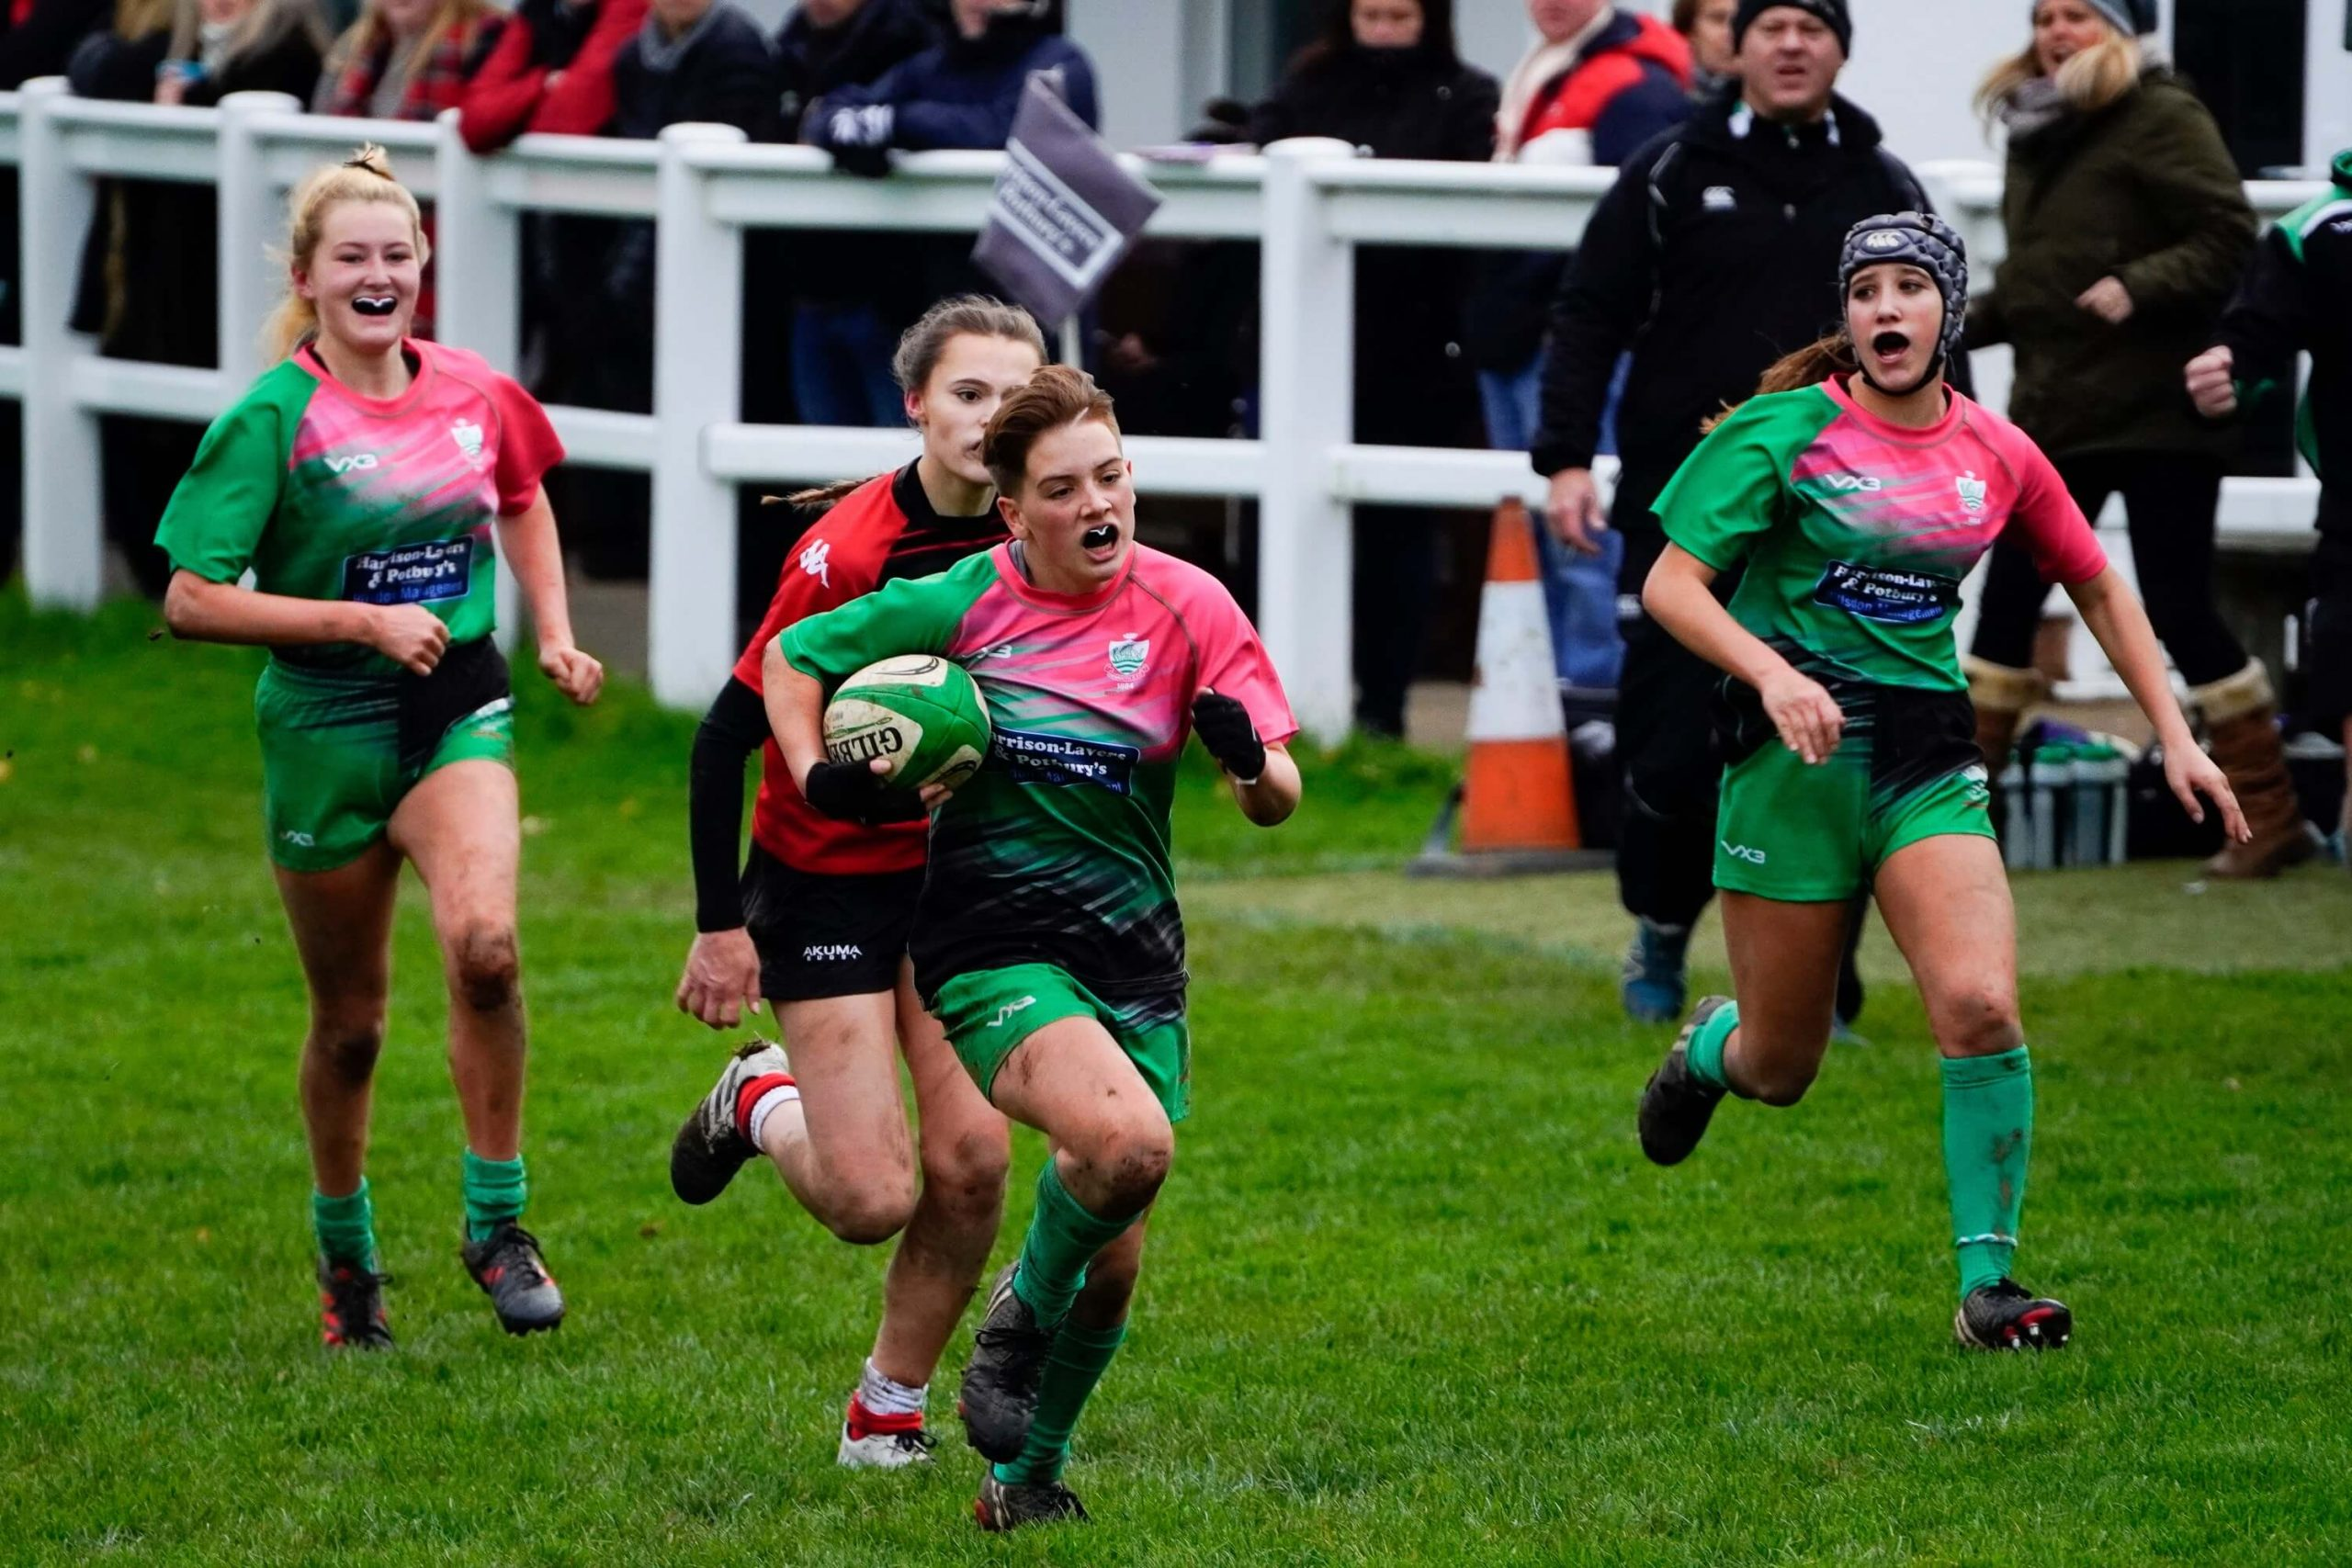 Sidmouth Under-18s girls' rugby side in action. Picture: contributed